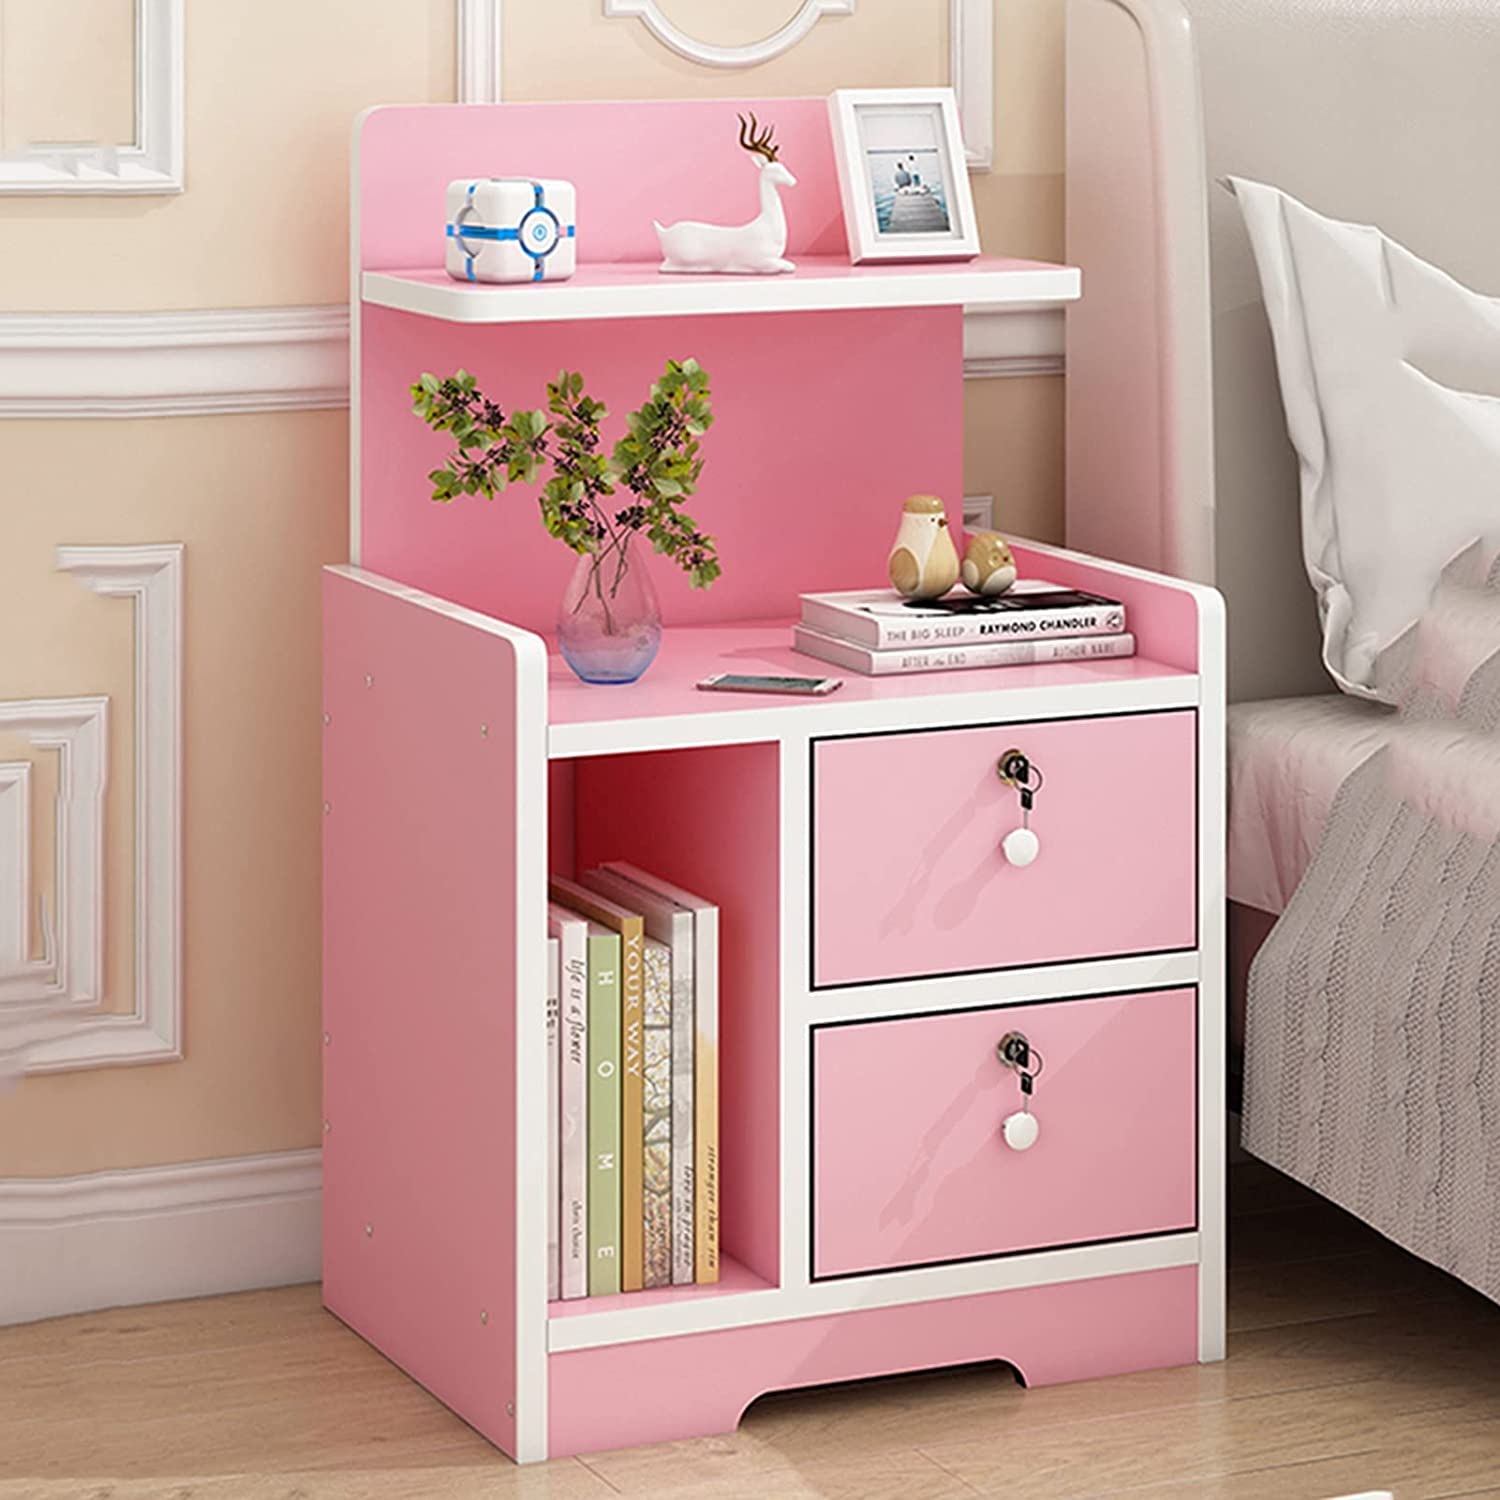 WSNBB Bedside Table Simple Modern Ranking TOP10 Economic Very popular Bedr Small Apartment